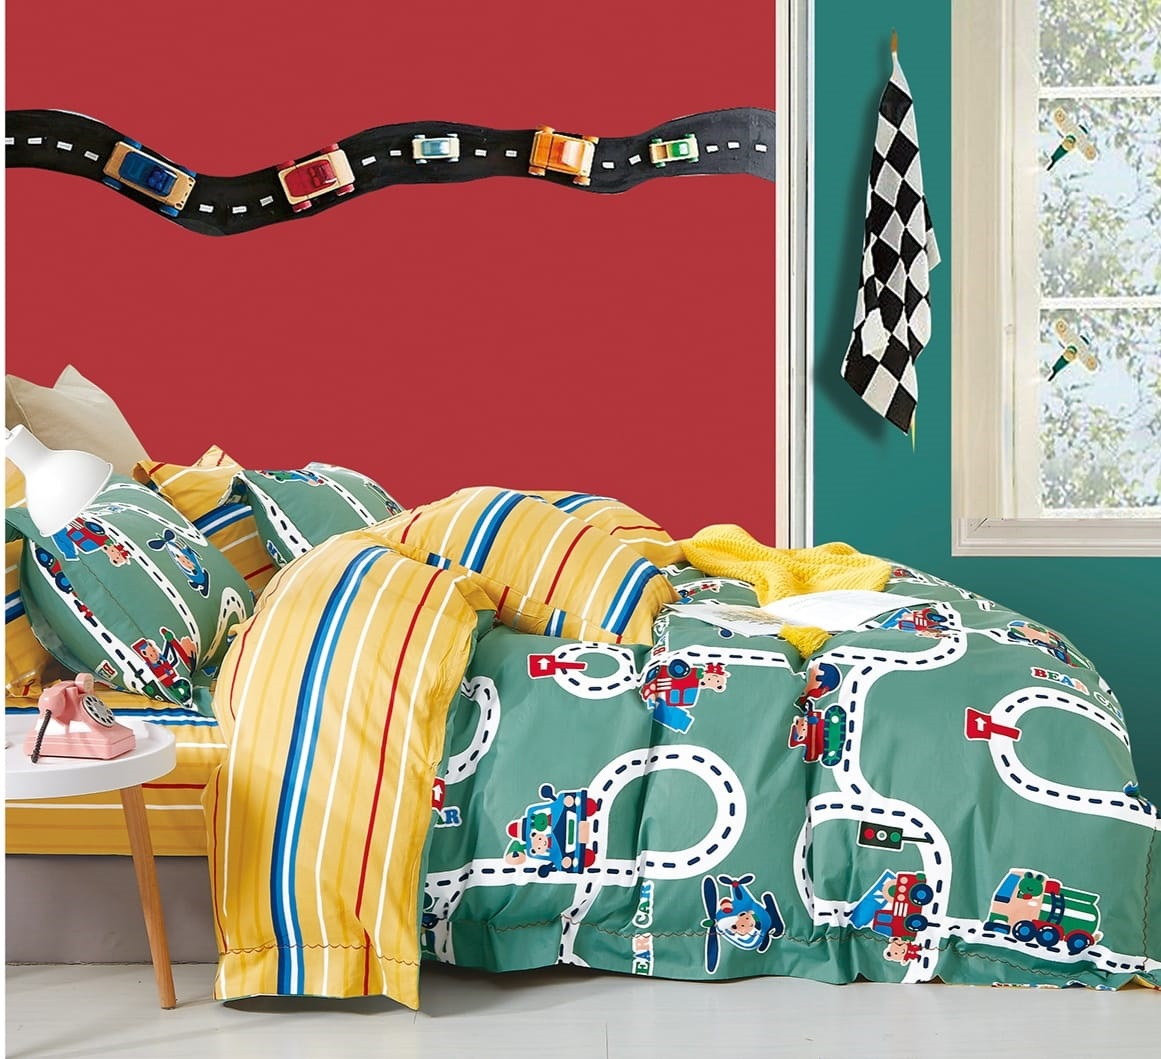 Sano - Organic Cotton Bedding Set